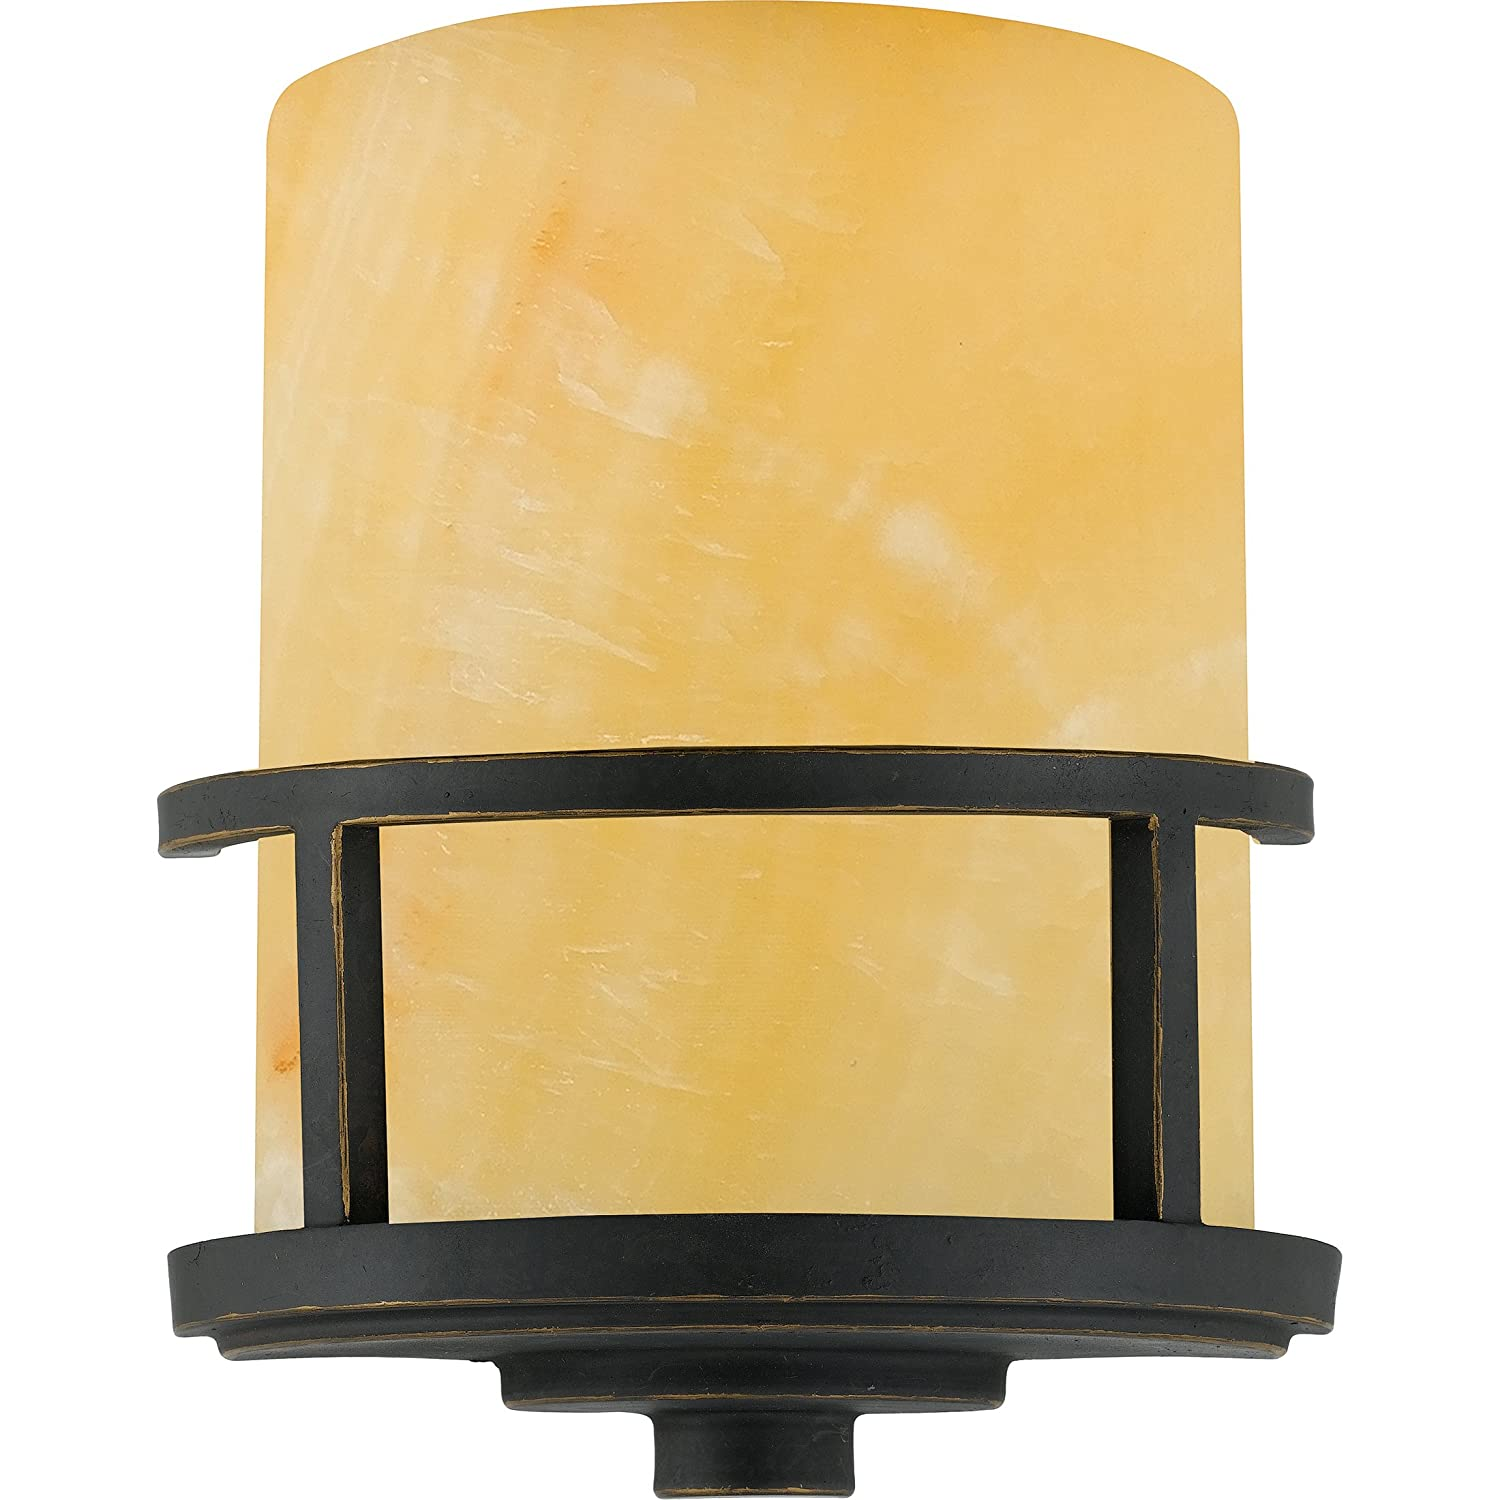 Quoizel KY8801IB 1-Light Kyle Wall Sconce in Imperial Bronze ...